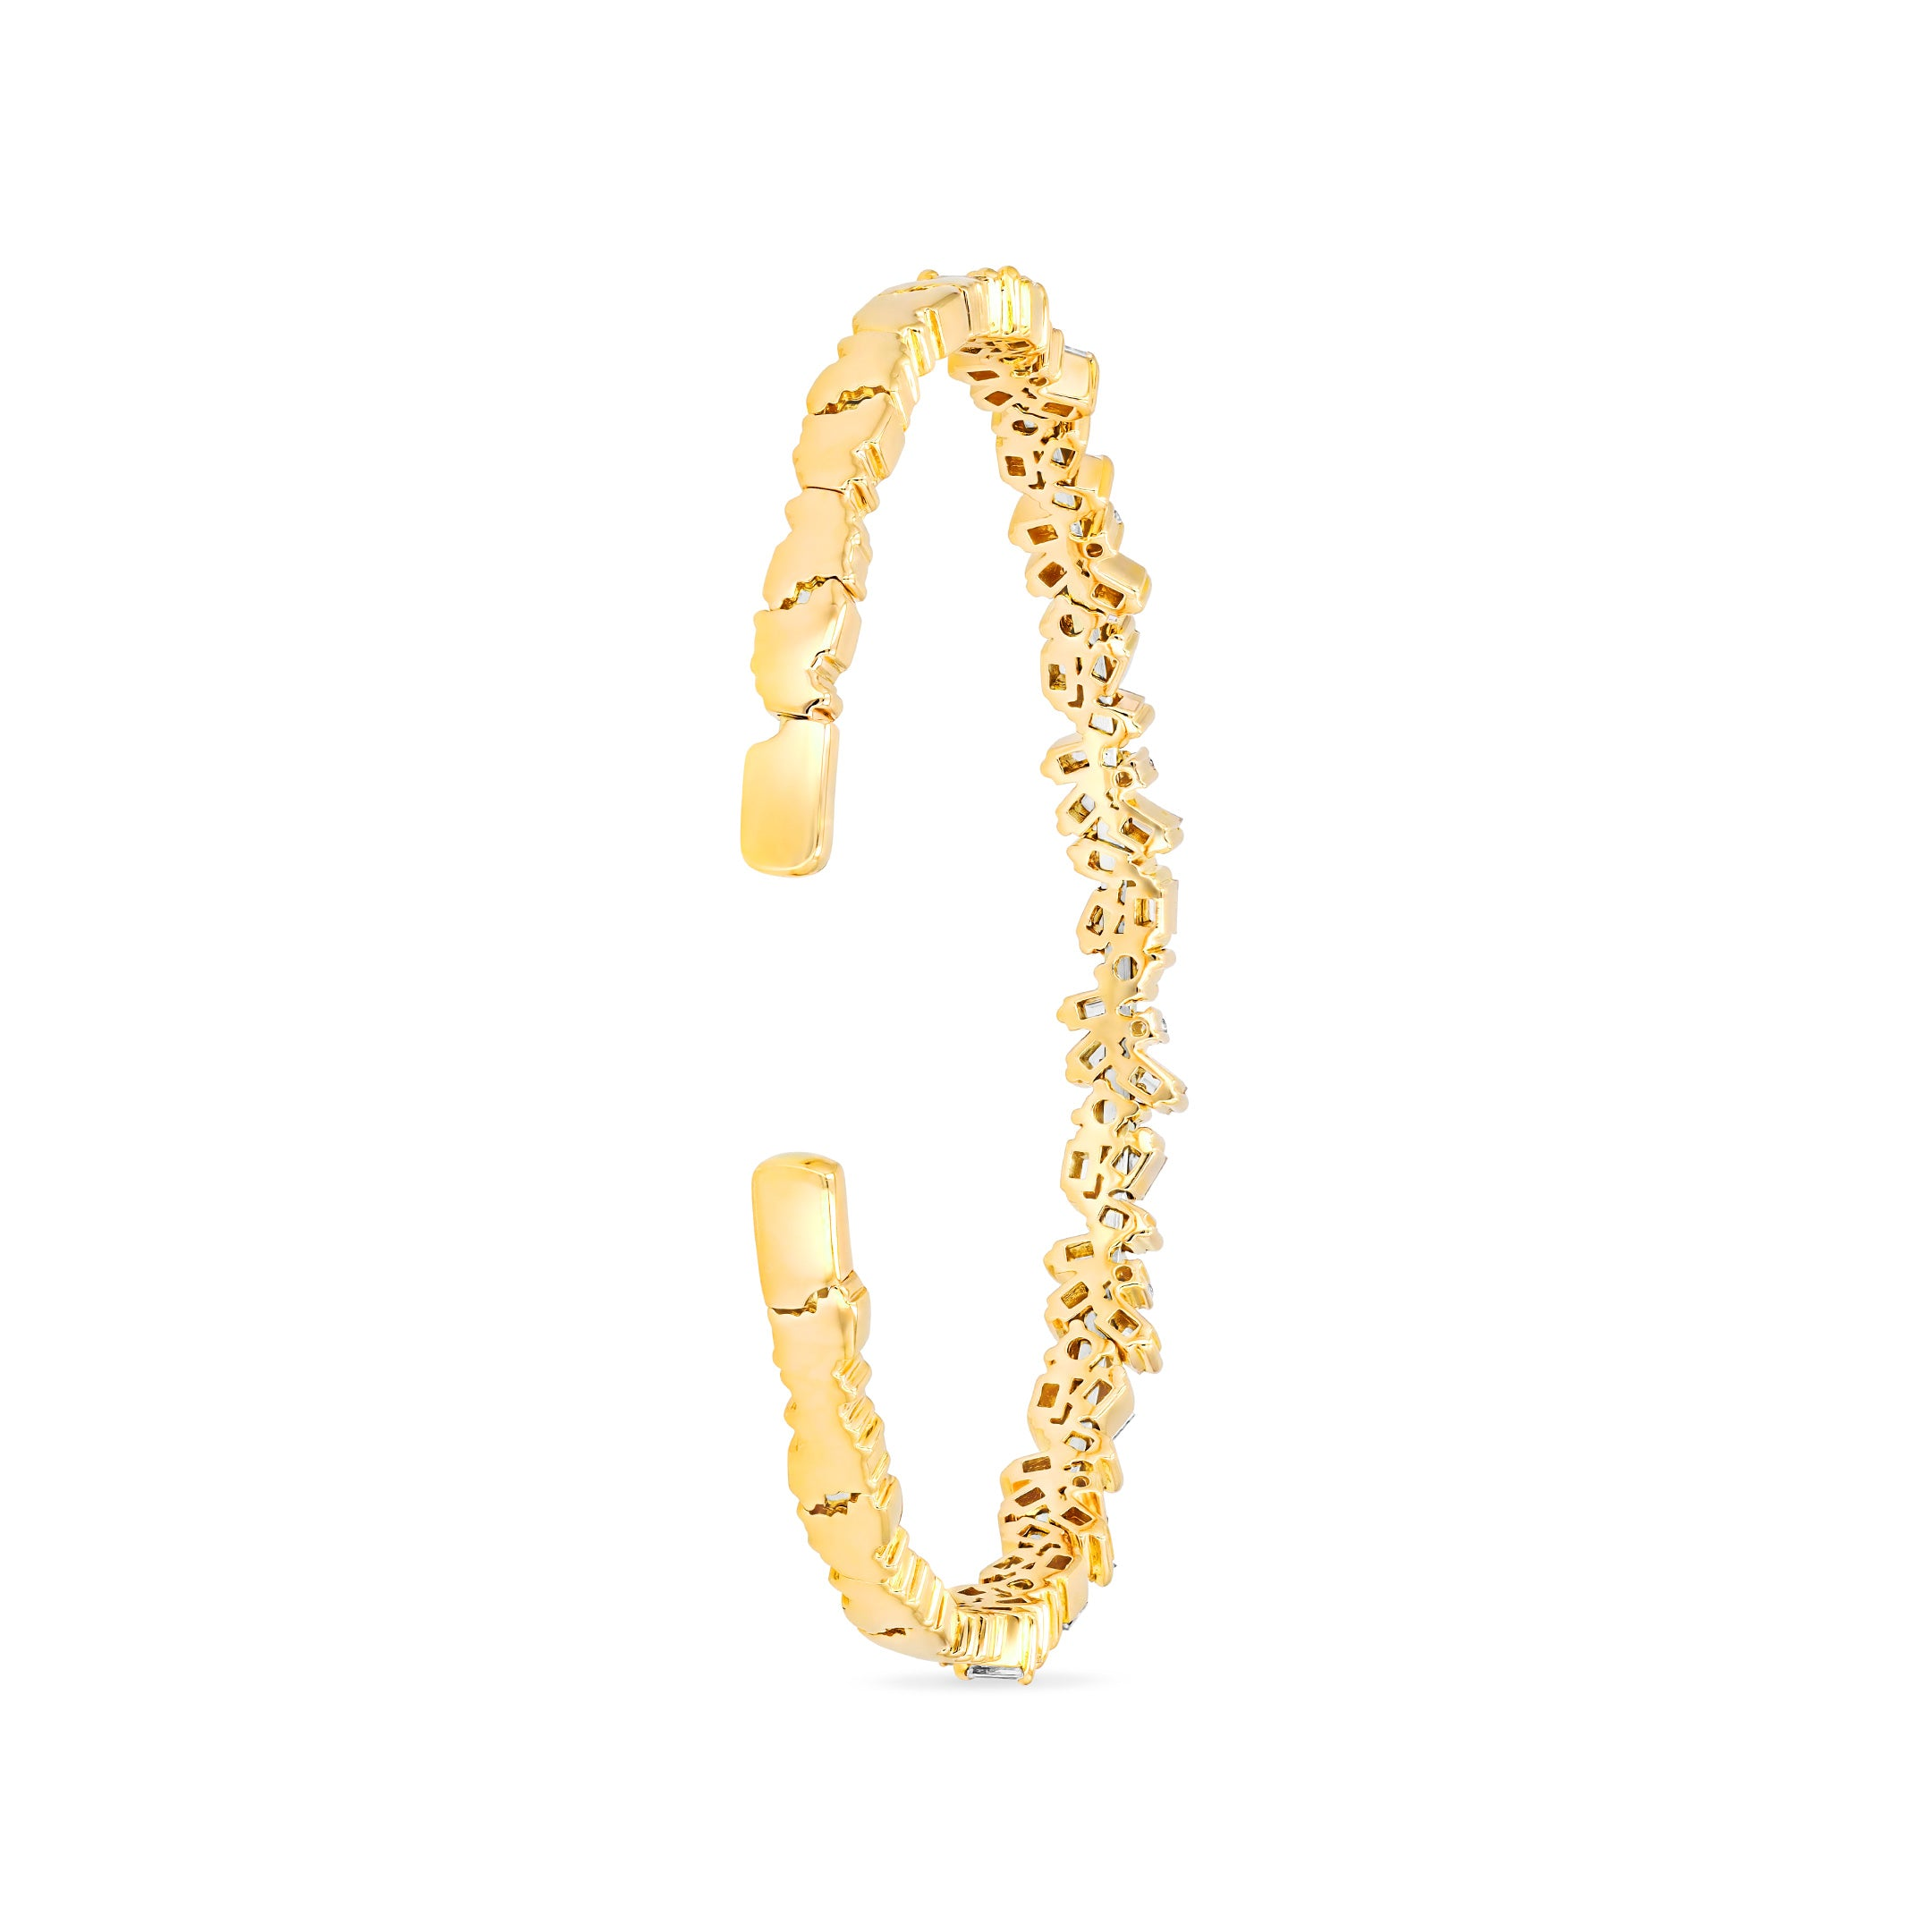 18K YELLOW GOLD FIREWORKS SPARKLER BANGLE